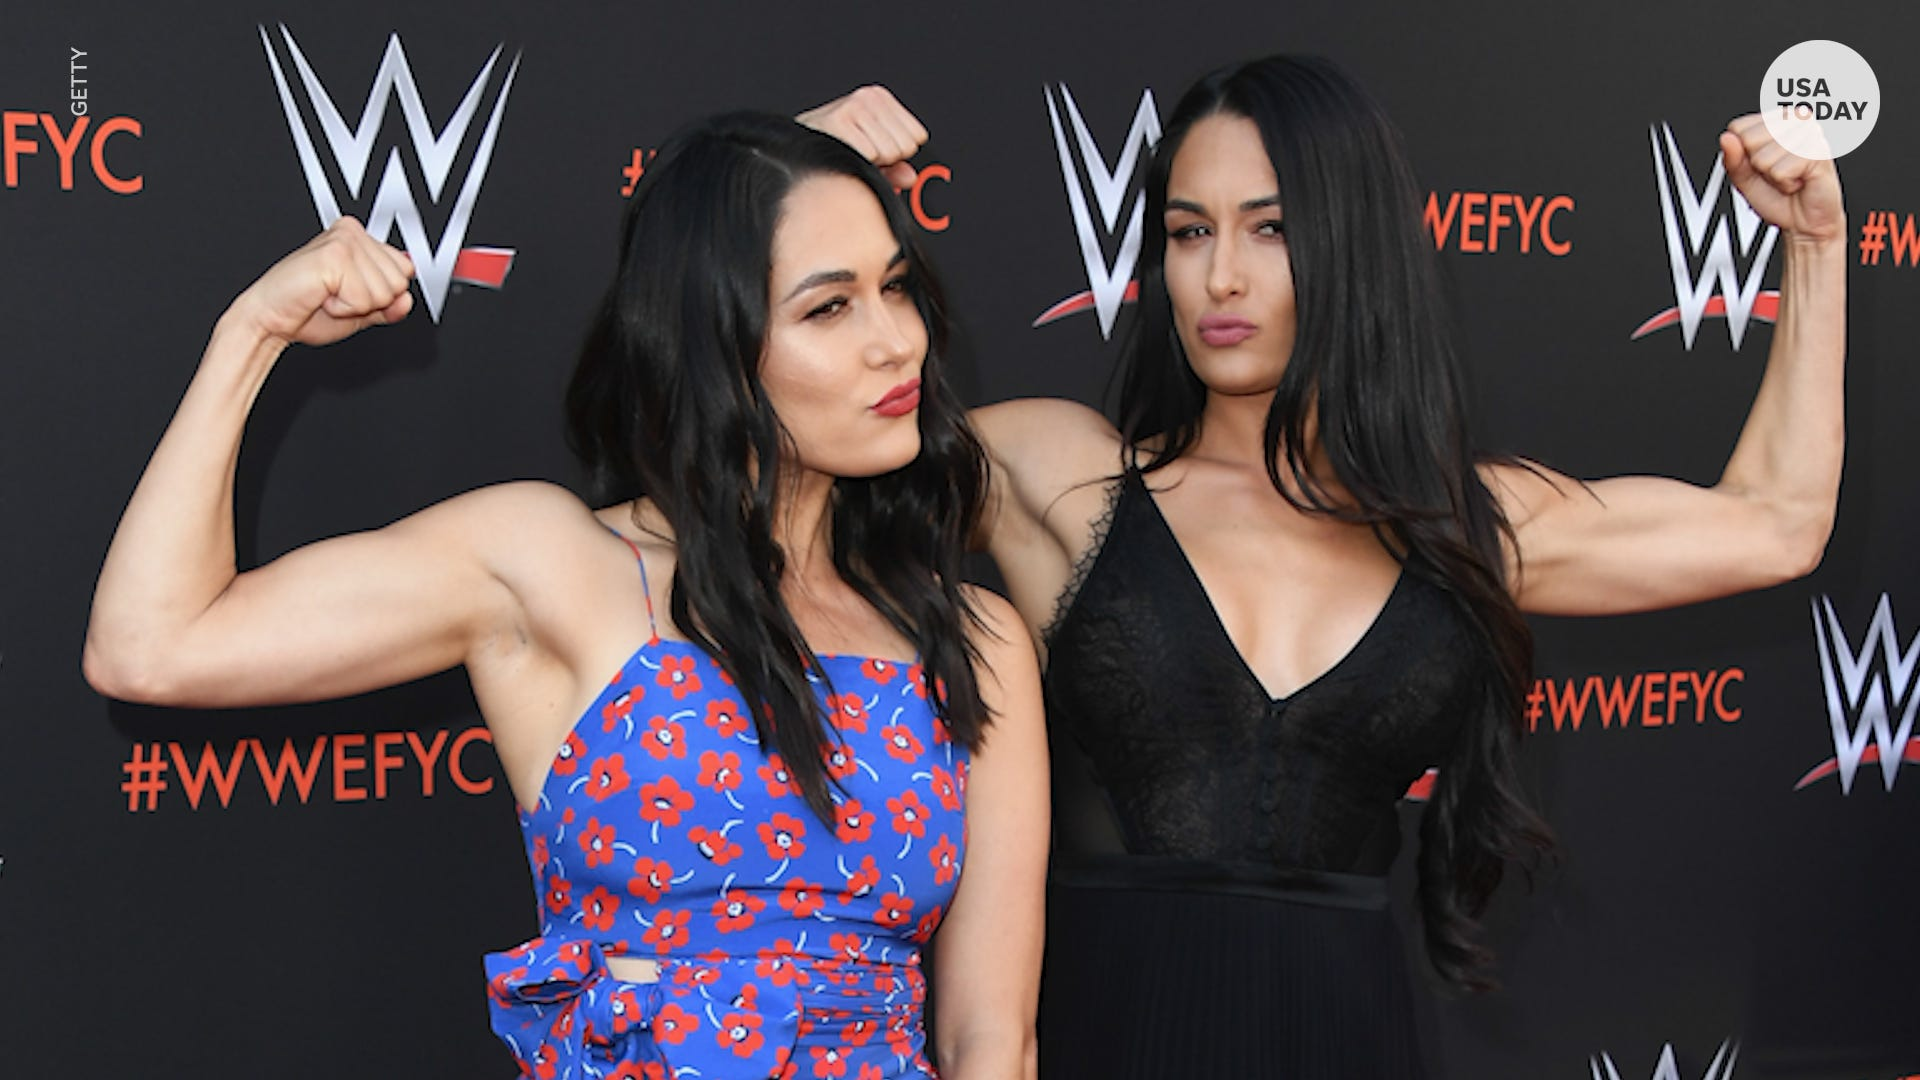 Brie and Nikki Bella Announce They Are Both Pregnant - WSTale.com